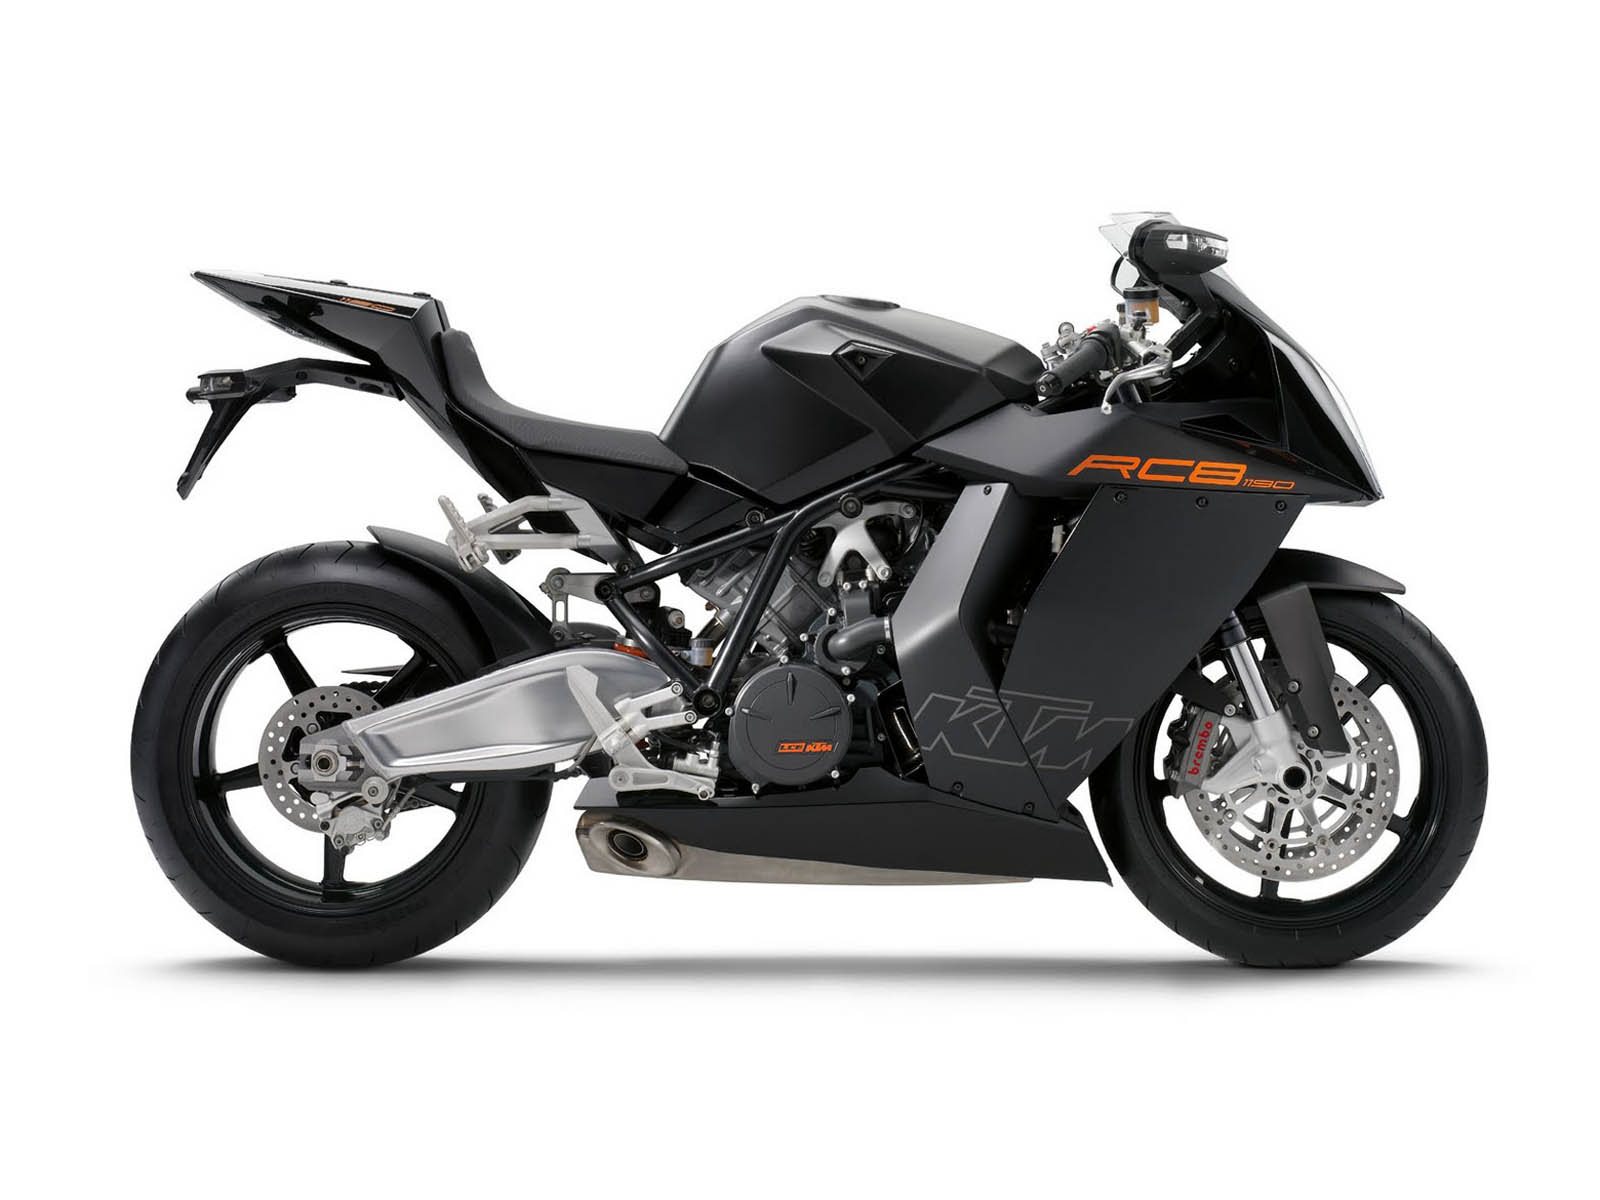 KTM RC8 1190 Bike Desktop Backgrounds KTM RC8 1190 Bike Paos KTM RC8 1600x1200